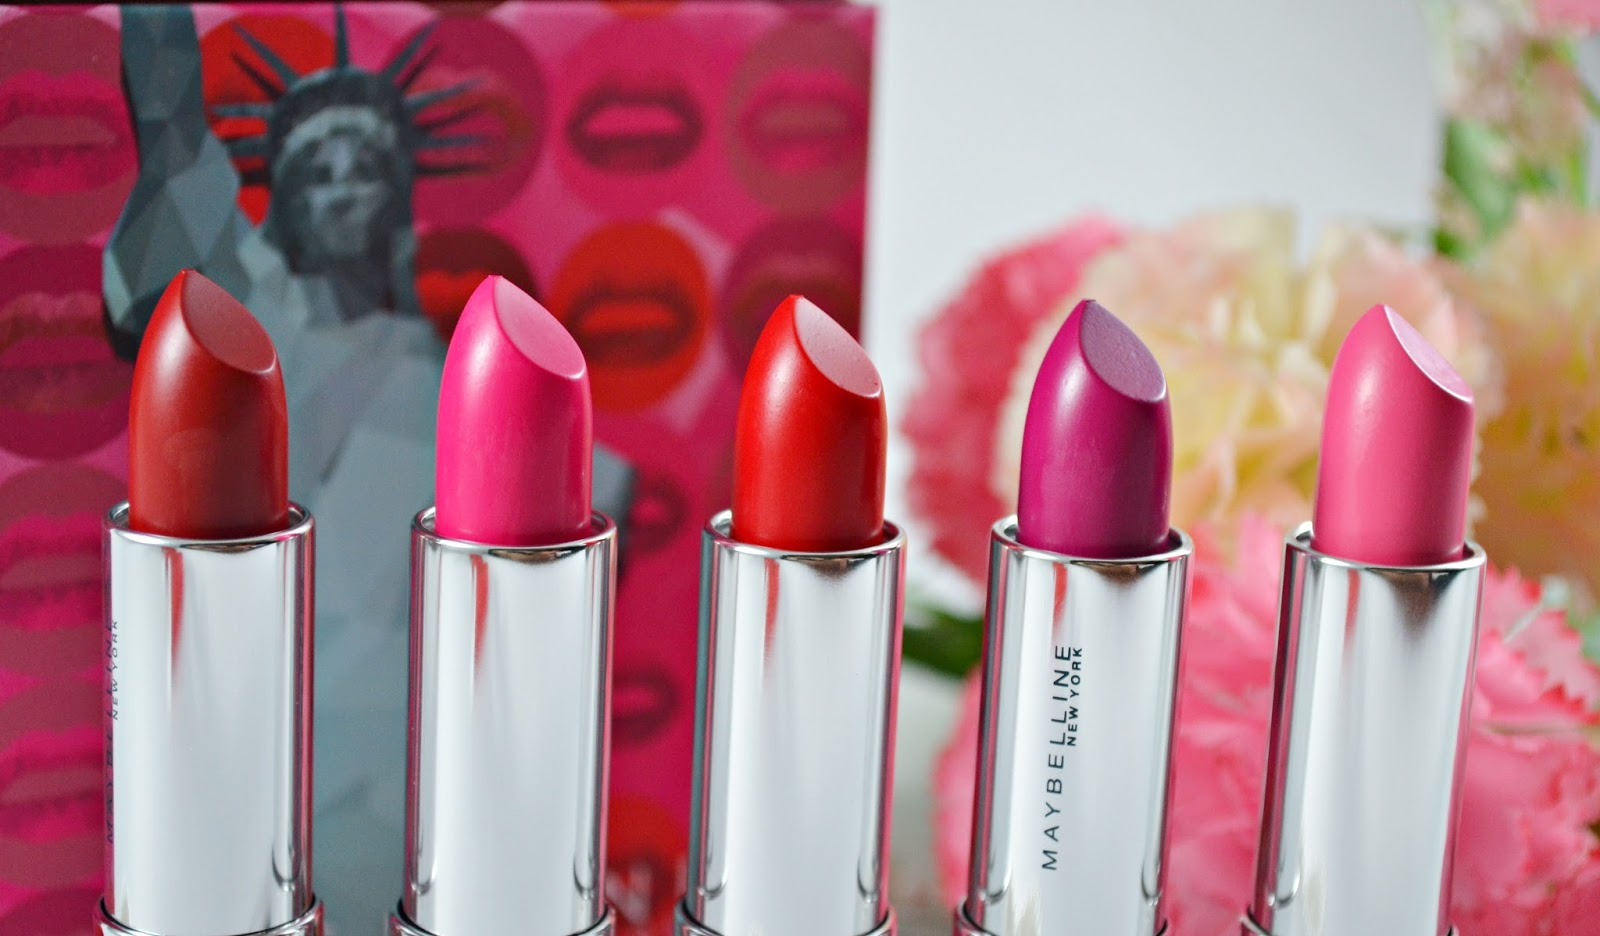 Maybelline Vivid Matte Lipsticks Shades 5 6 7 8 And 13 All Lipstik Today I Will Now Share My Thoughts On Each Lipstick As Well How It Looks Like When Am Wearing